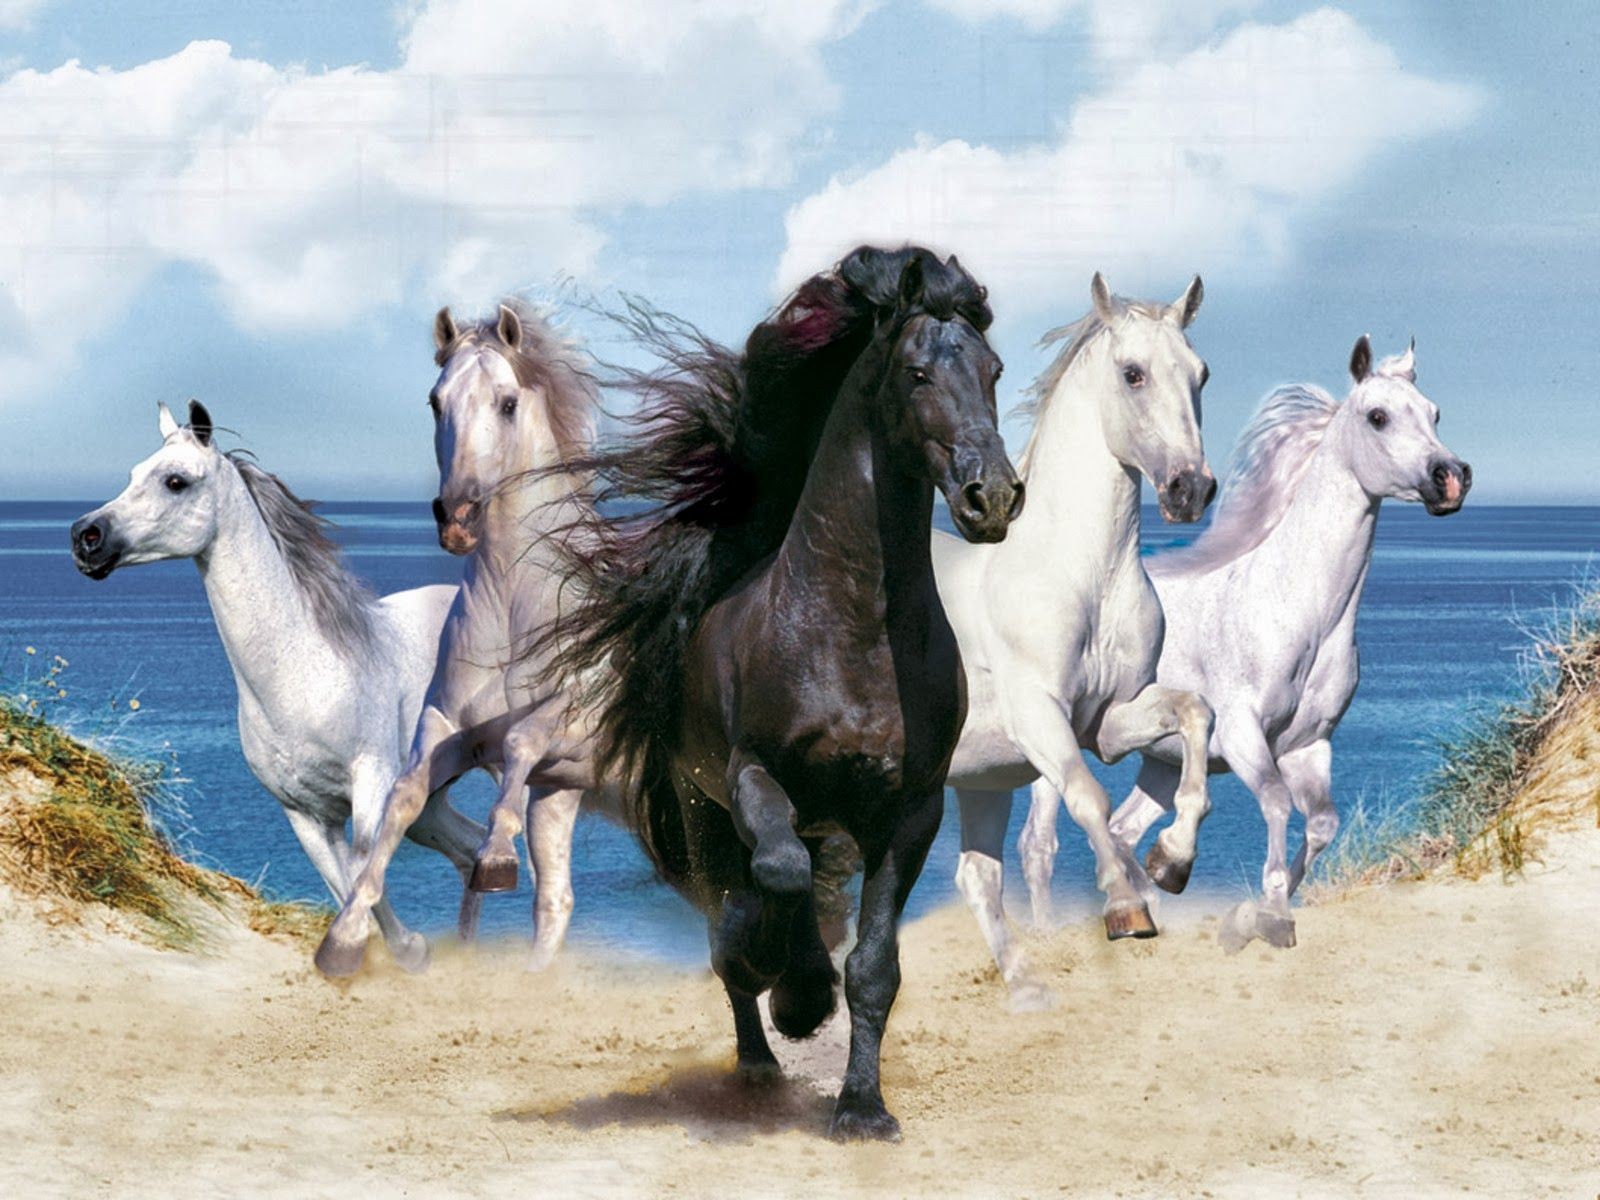 Horses Hd Wallpapers Free Hd Wallpapers Horse Wallpaper Horse Background Horses